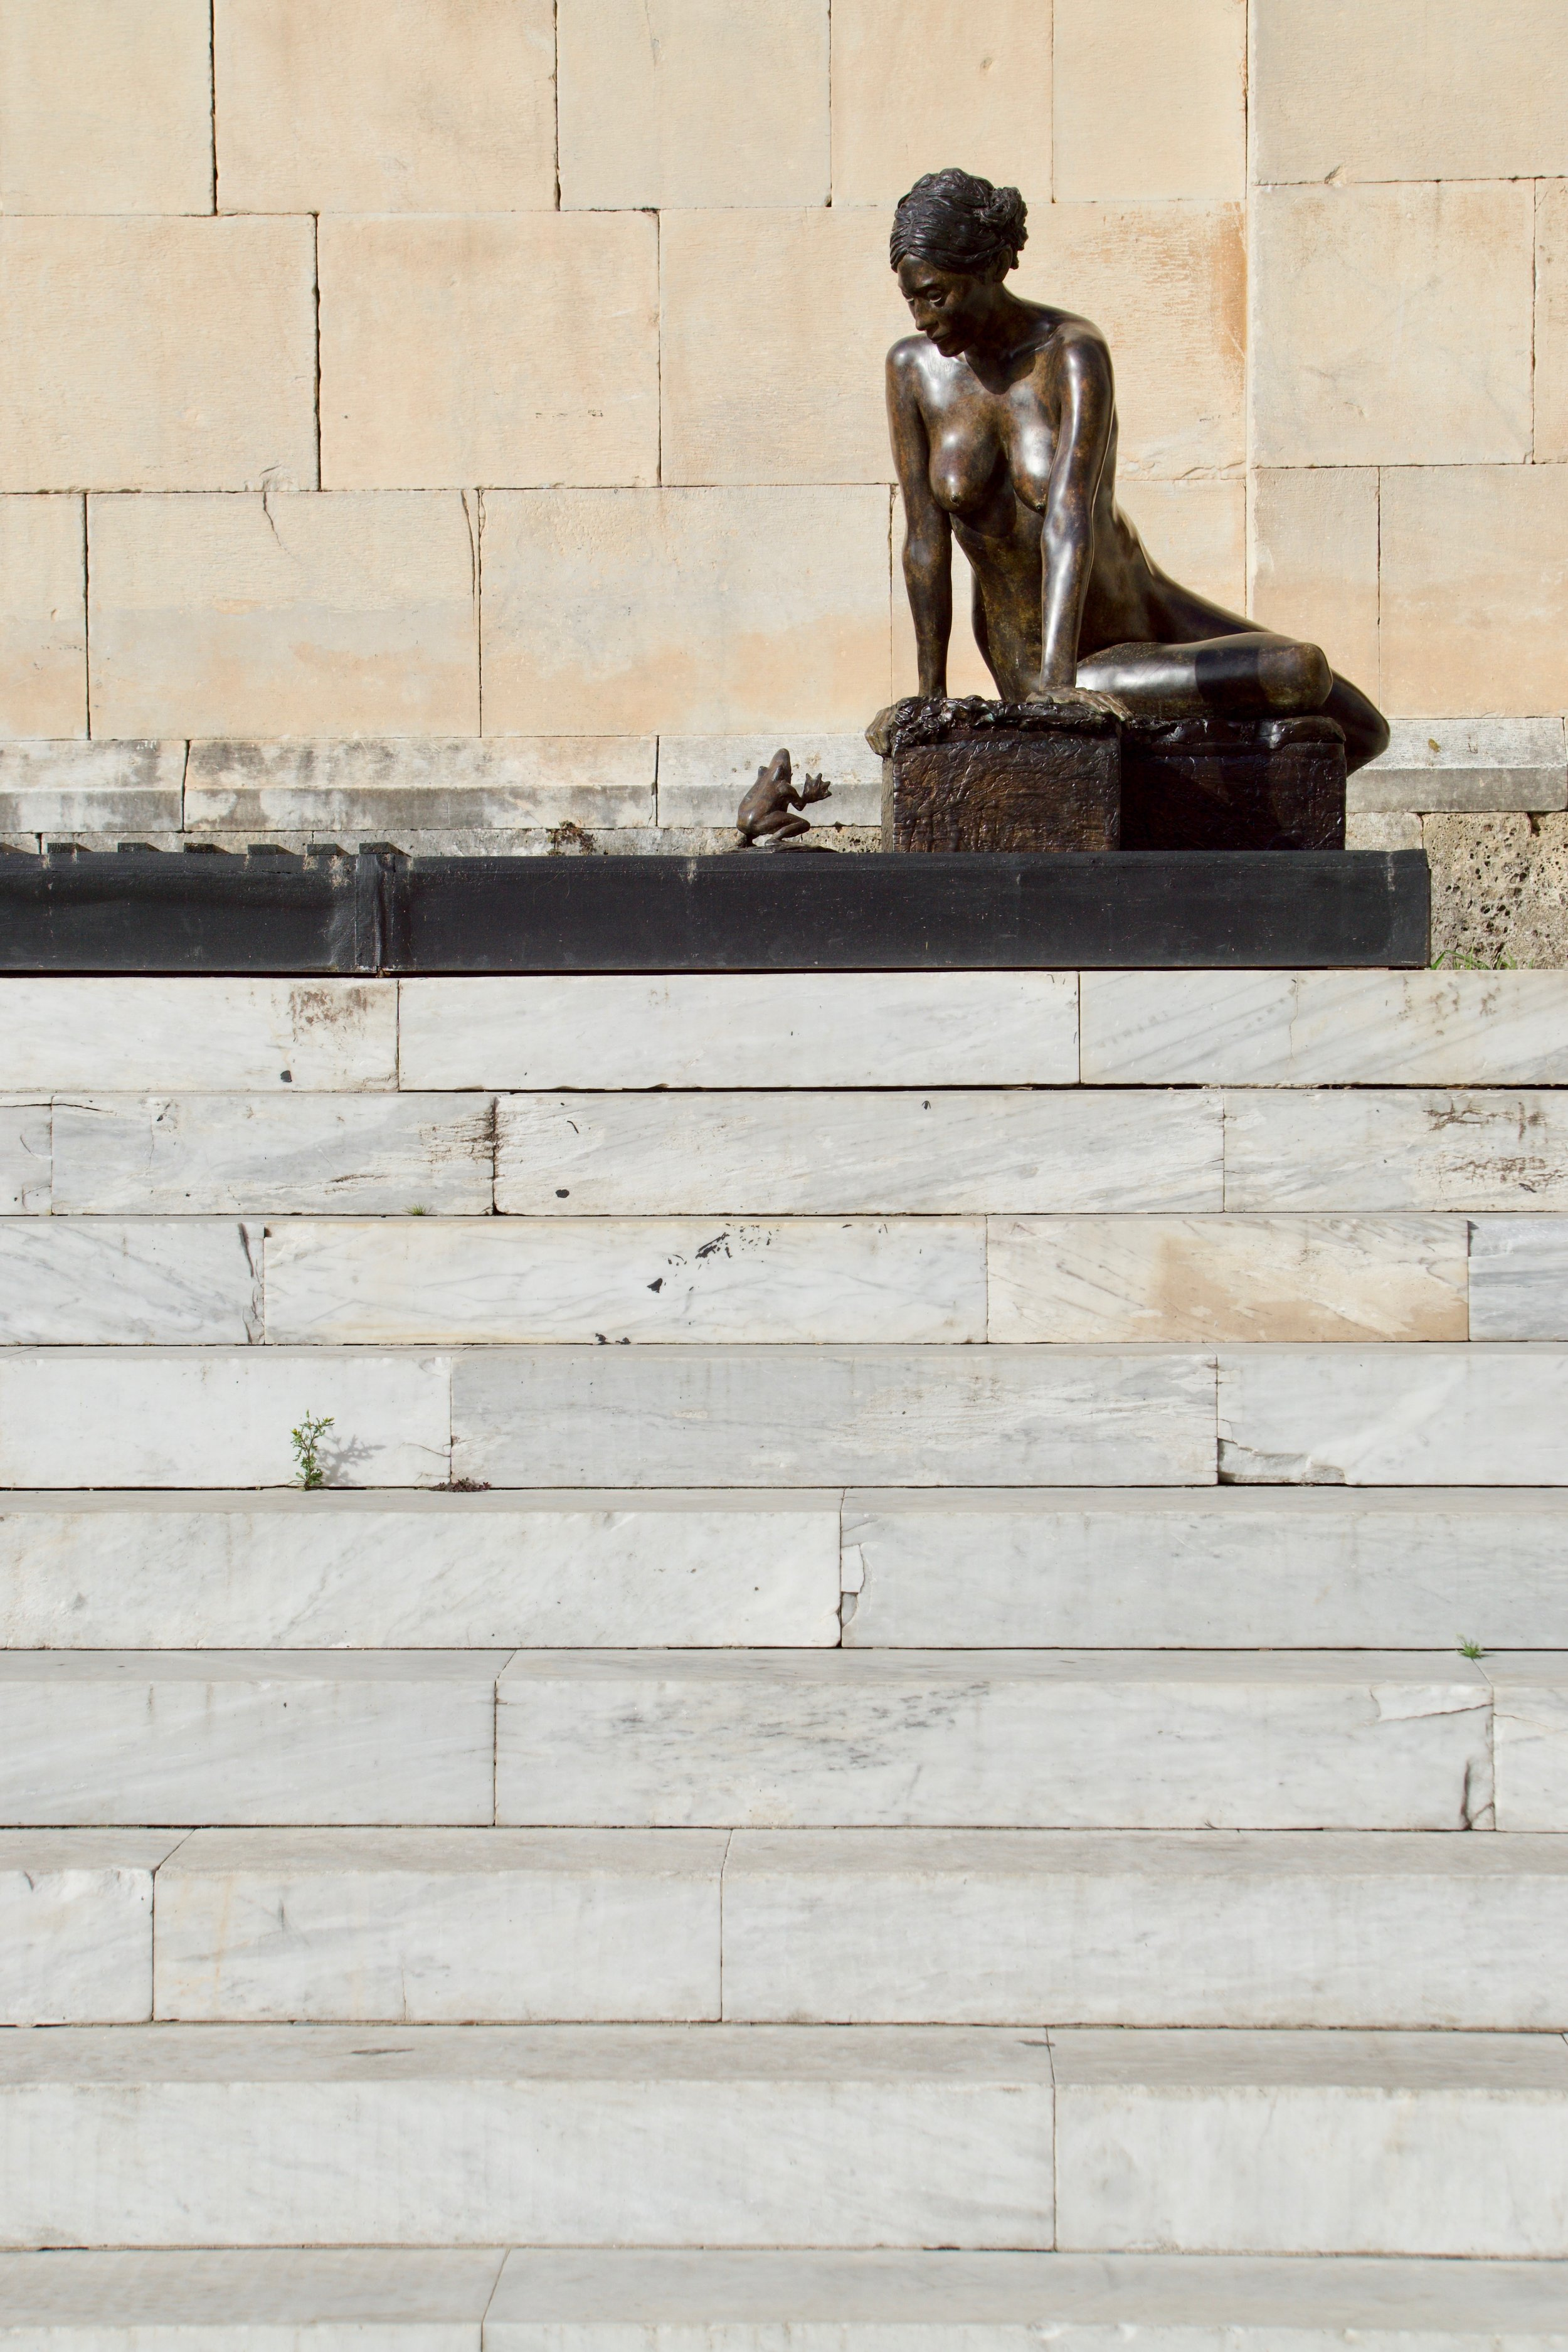 Sitting atop the marble steps leading into the sculpture museum church is this beauty.